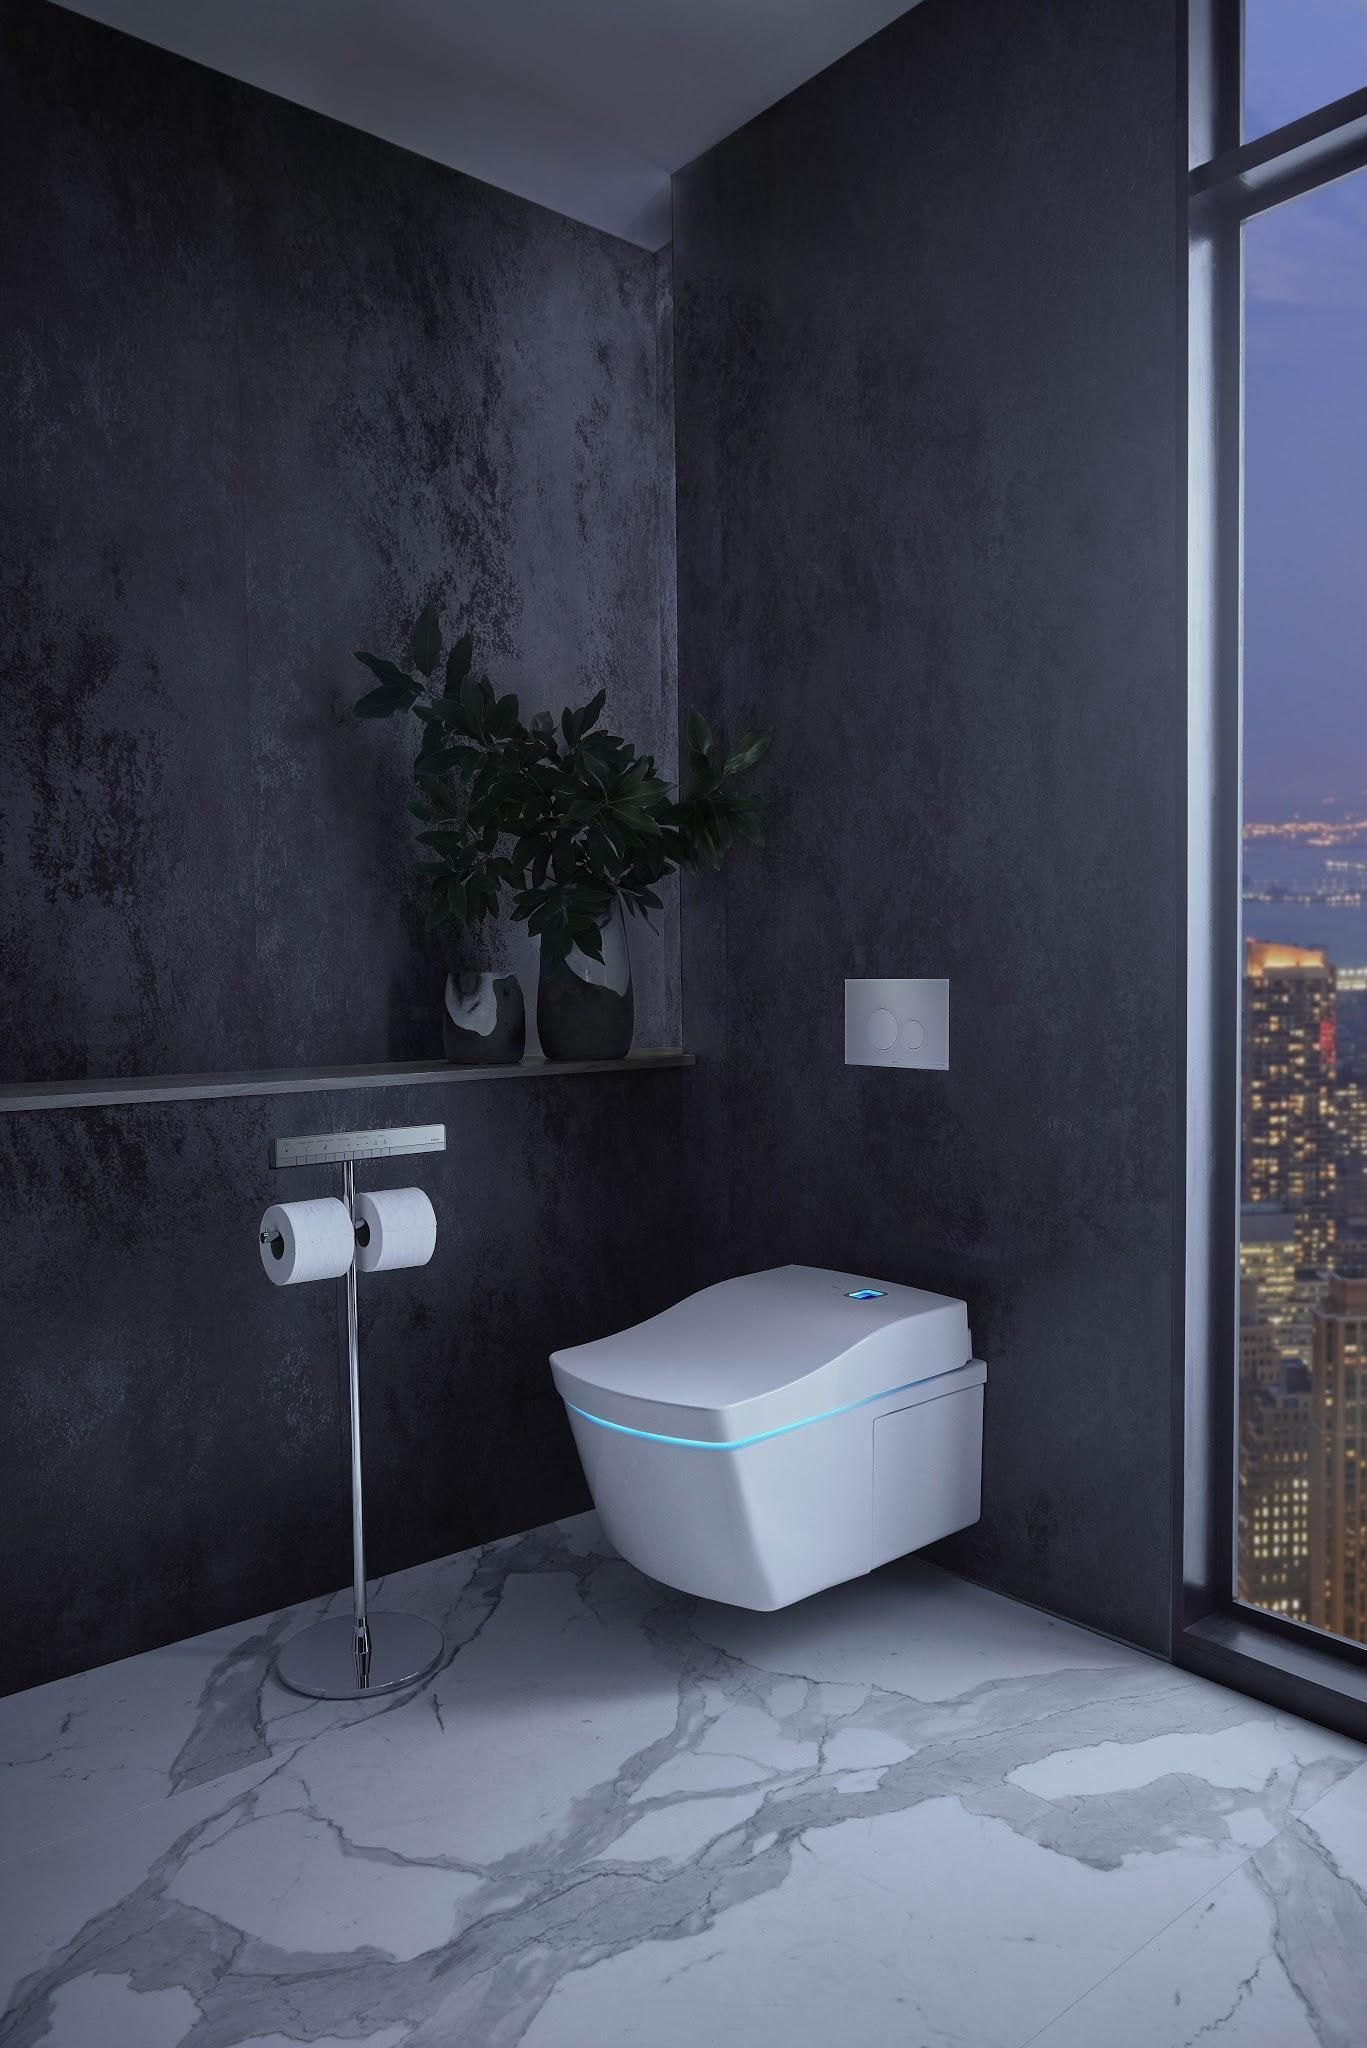 TOTOs High-Tech Toilet Combines Aesthetics With Performance ...